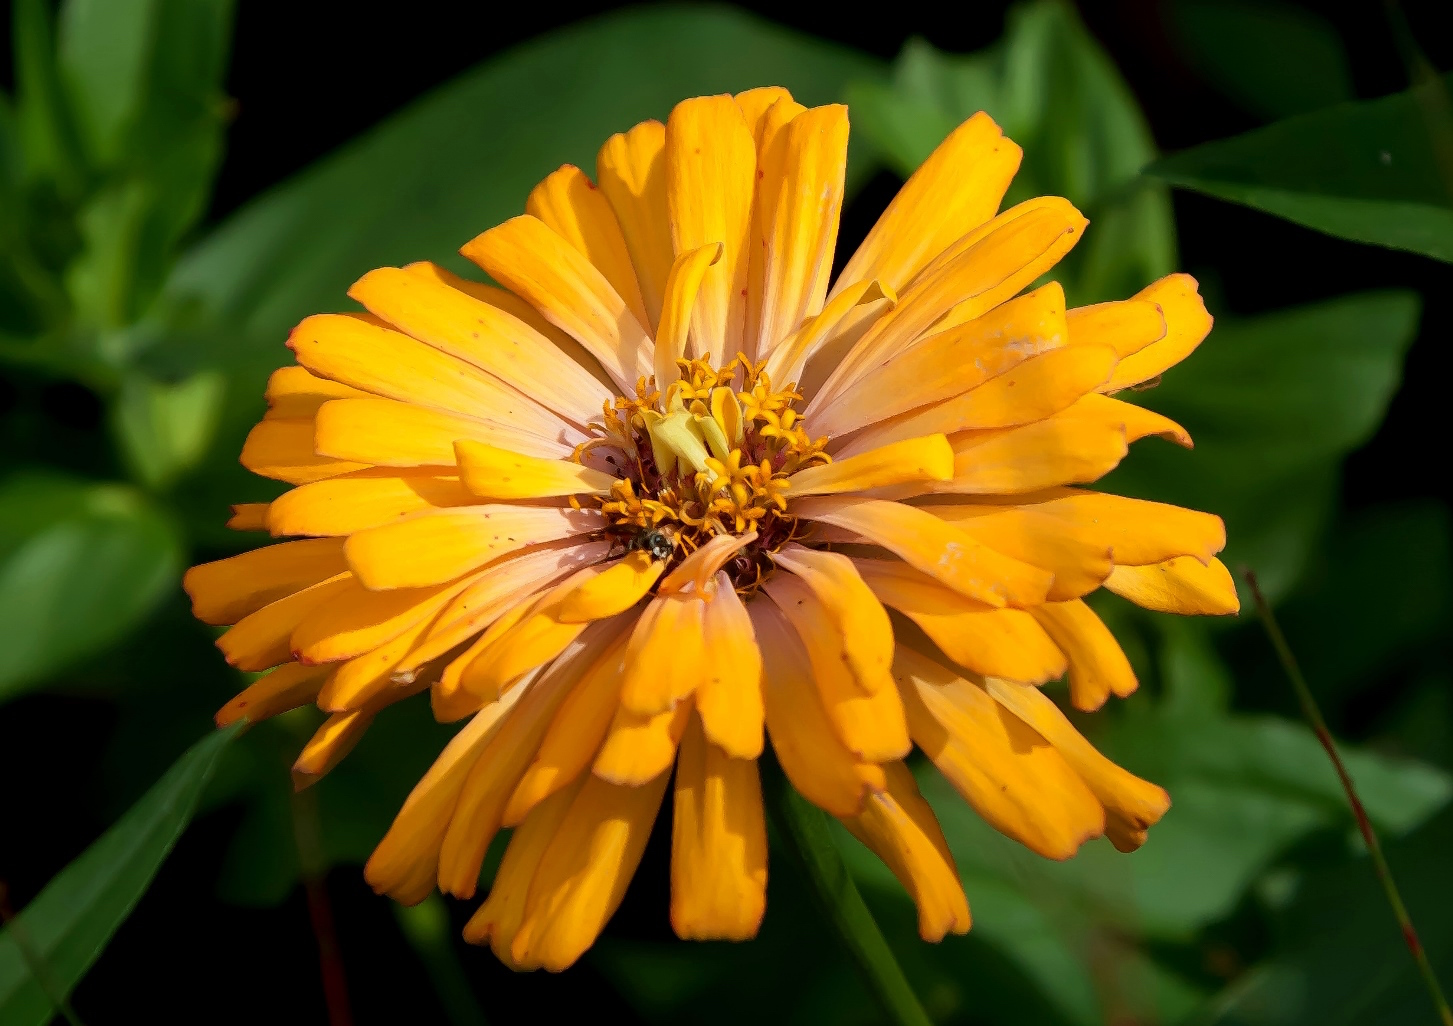 Zinnias are available in a variety of colors including yellow, red, orange, pink, white and purple. The flowers have a range of appearances, from a single row of petals, to a dome shape.